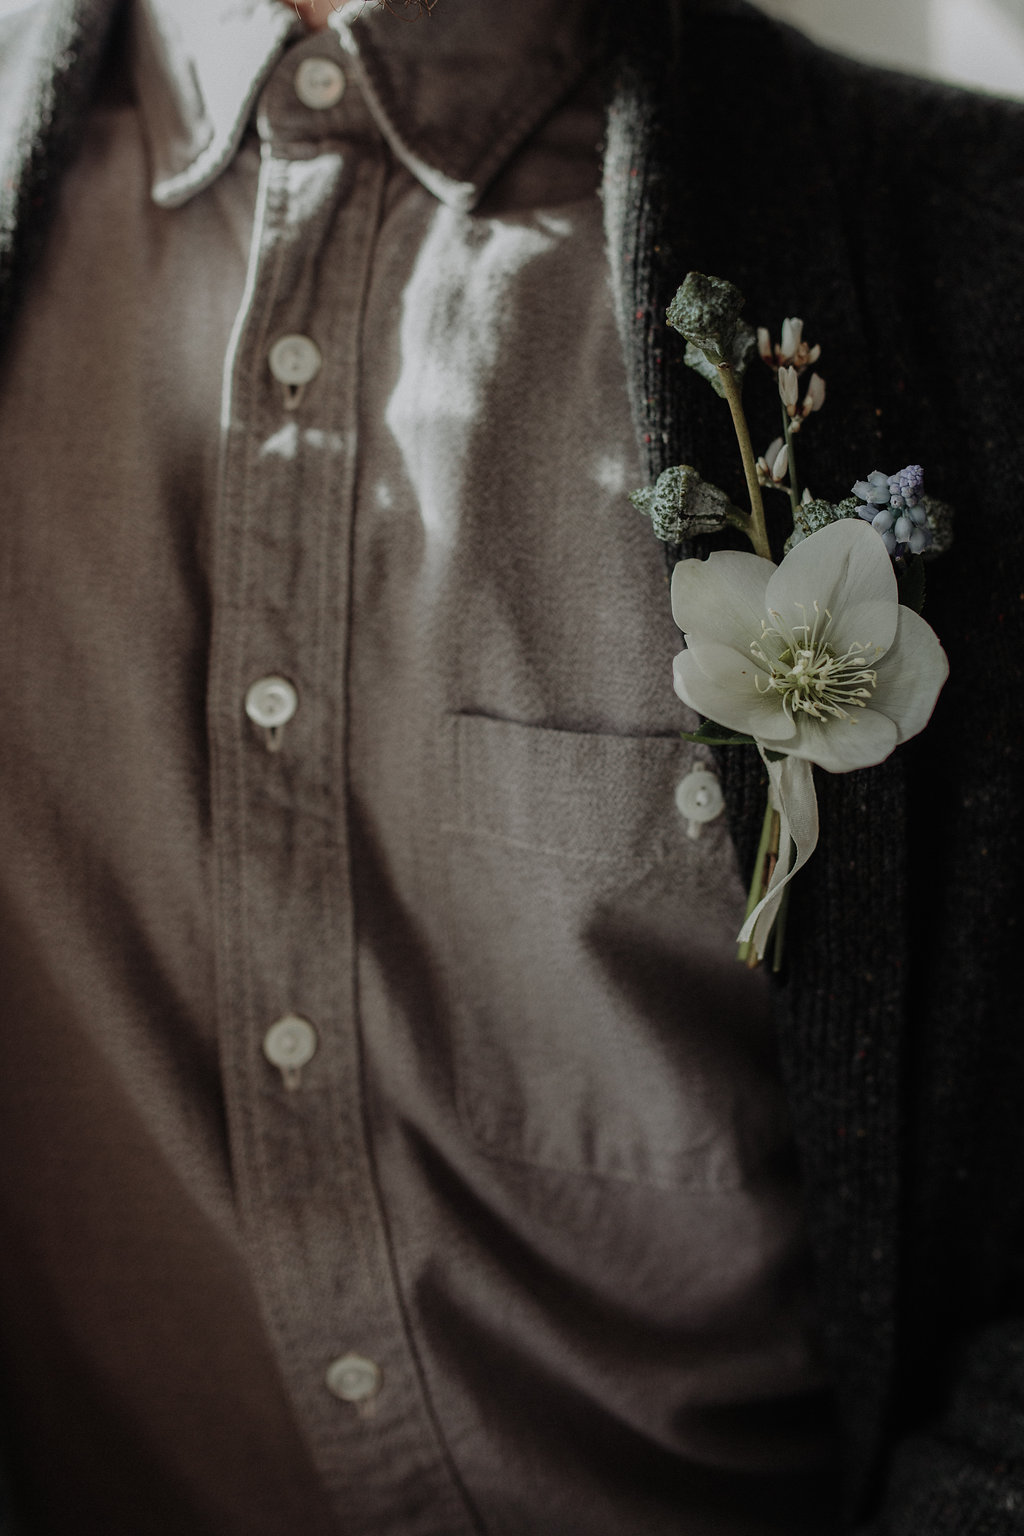 Winter wedding flowers by Nectar & Root | Wedding floral design services in Burlington, Vermont (VT) | Boutonniere with hellebore, eucalyptus pod, grape hyacinth, muscari